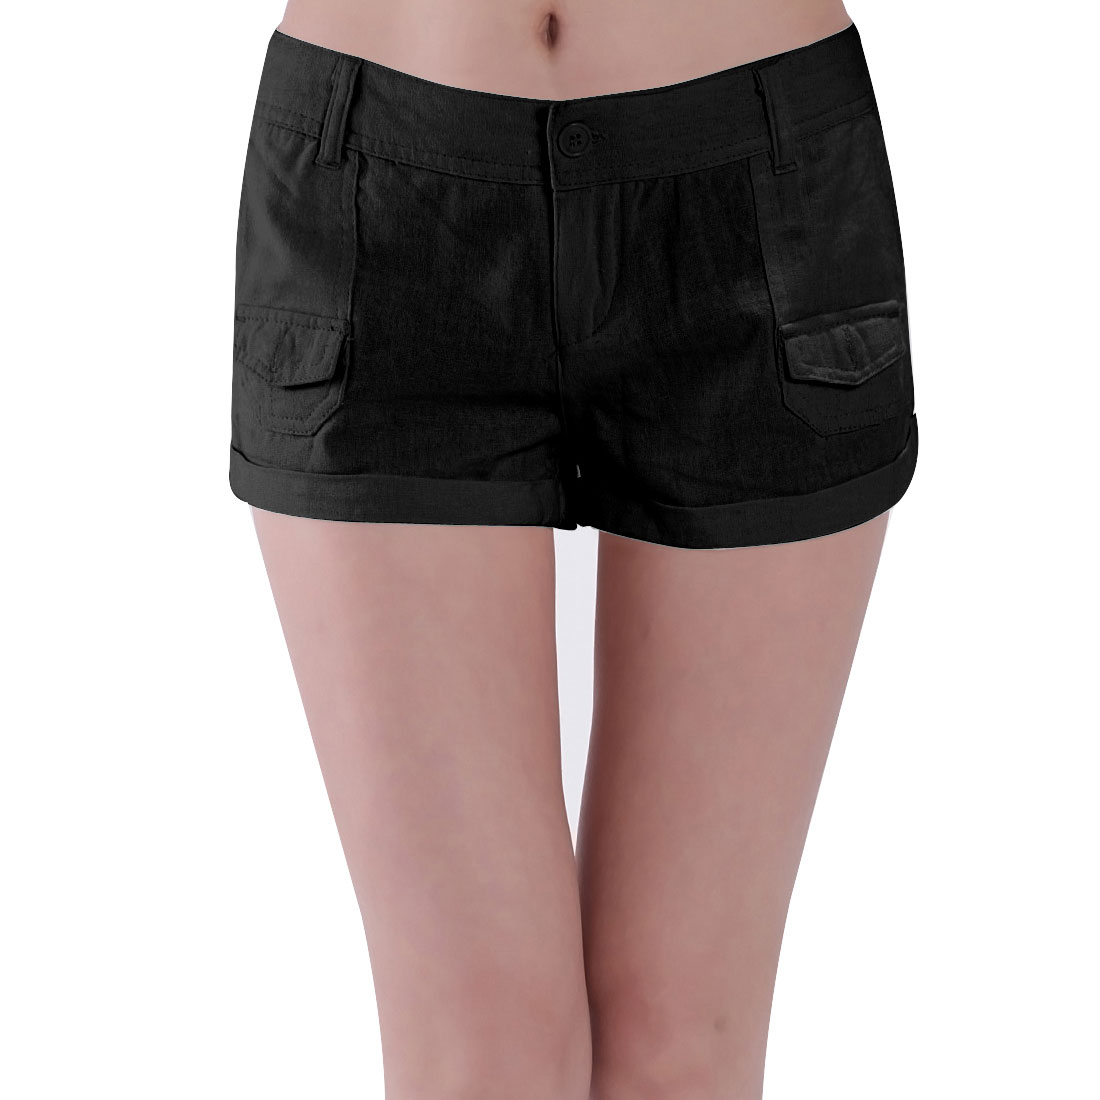 Woman Mini Vertical Pockets Detail Casual Zip Shorts Pants Black S